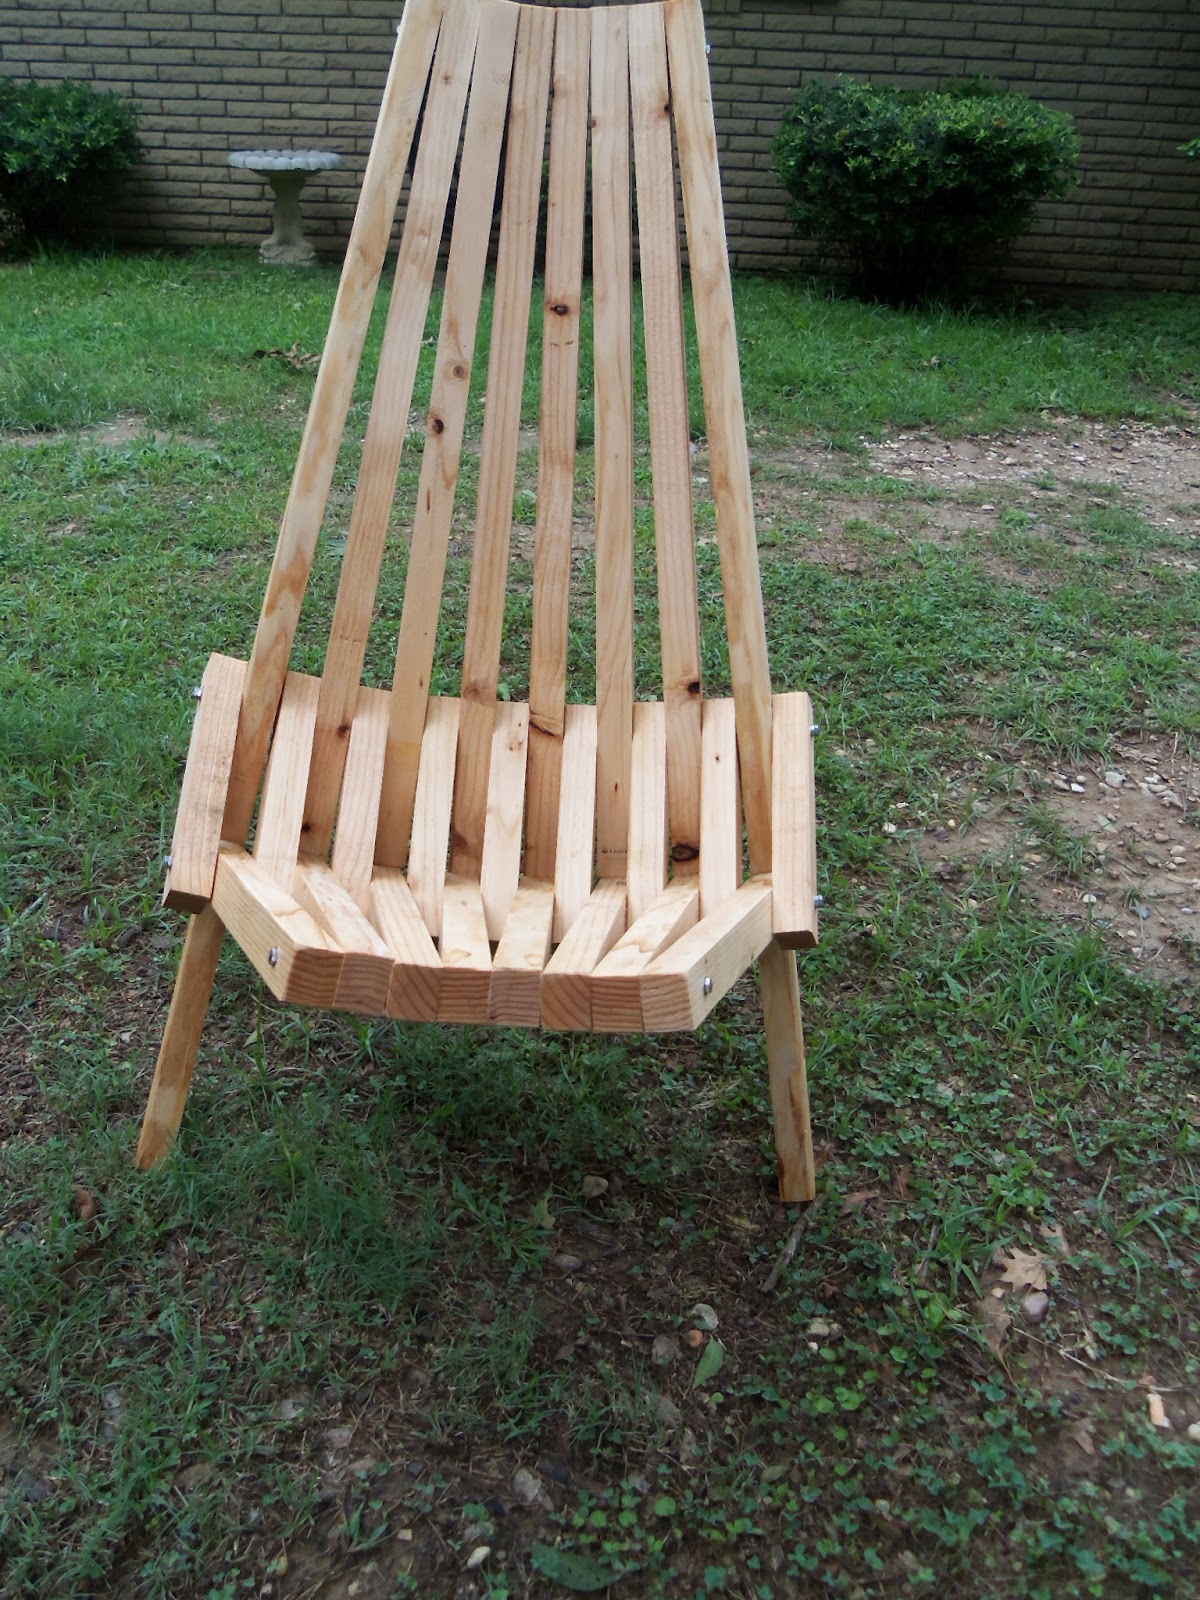 kentucky stick chair